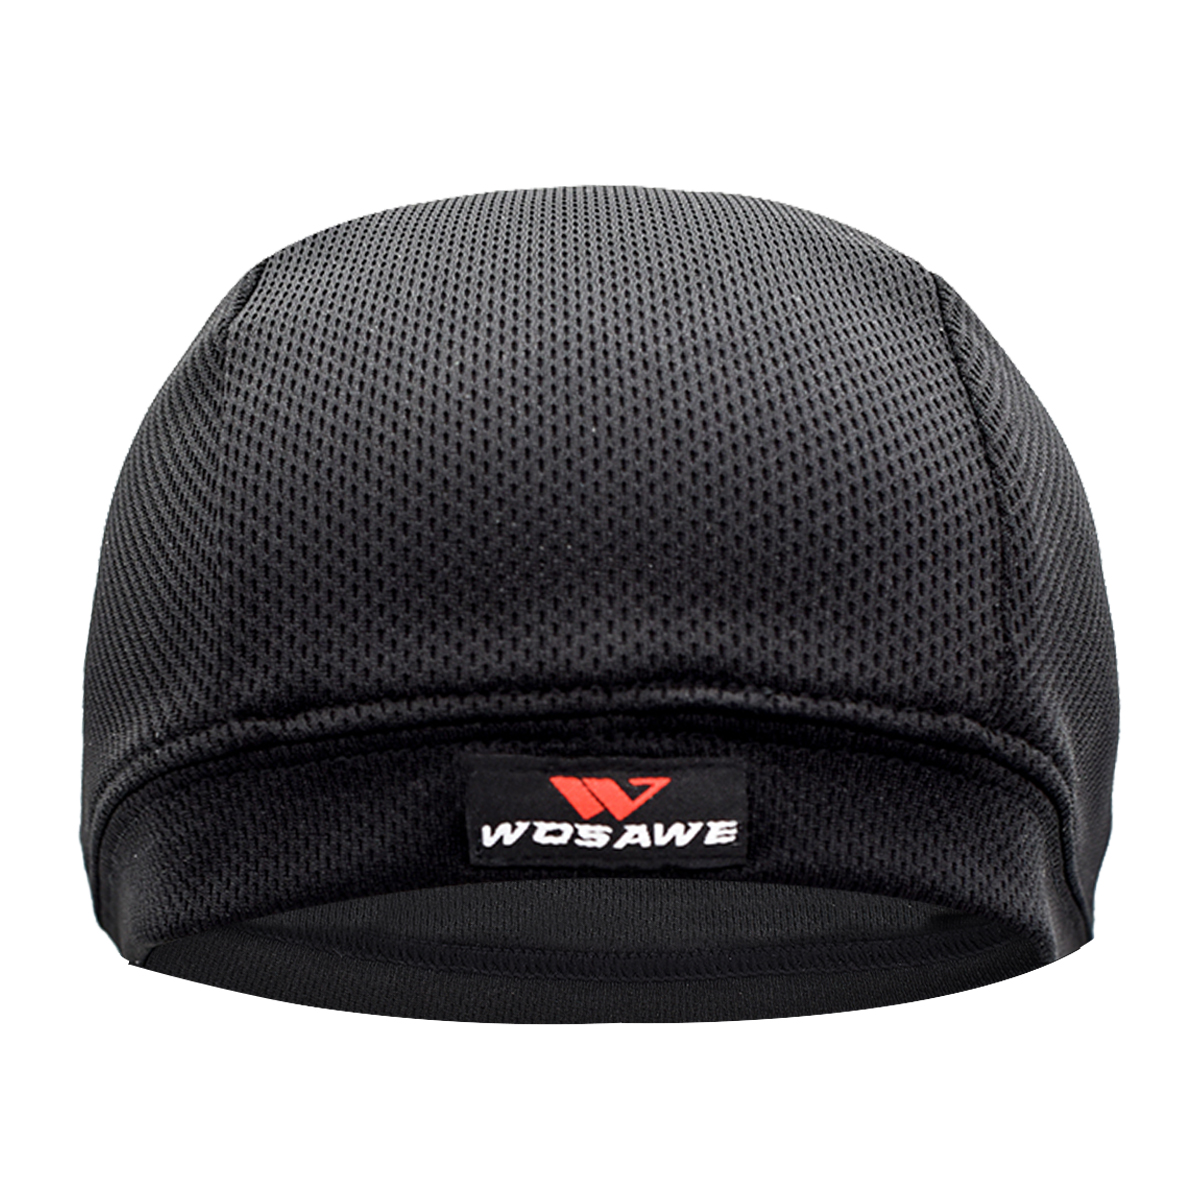 WOSAWE Breathable Mesh Mens Motorcycle Helmet Inner Caps Anti-Sweat Hat Thin Motocross Racing Ski Under Helmet Lining Caps